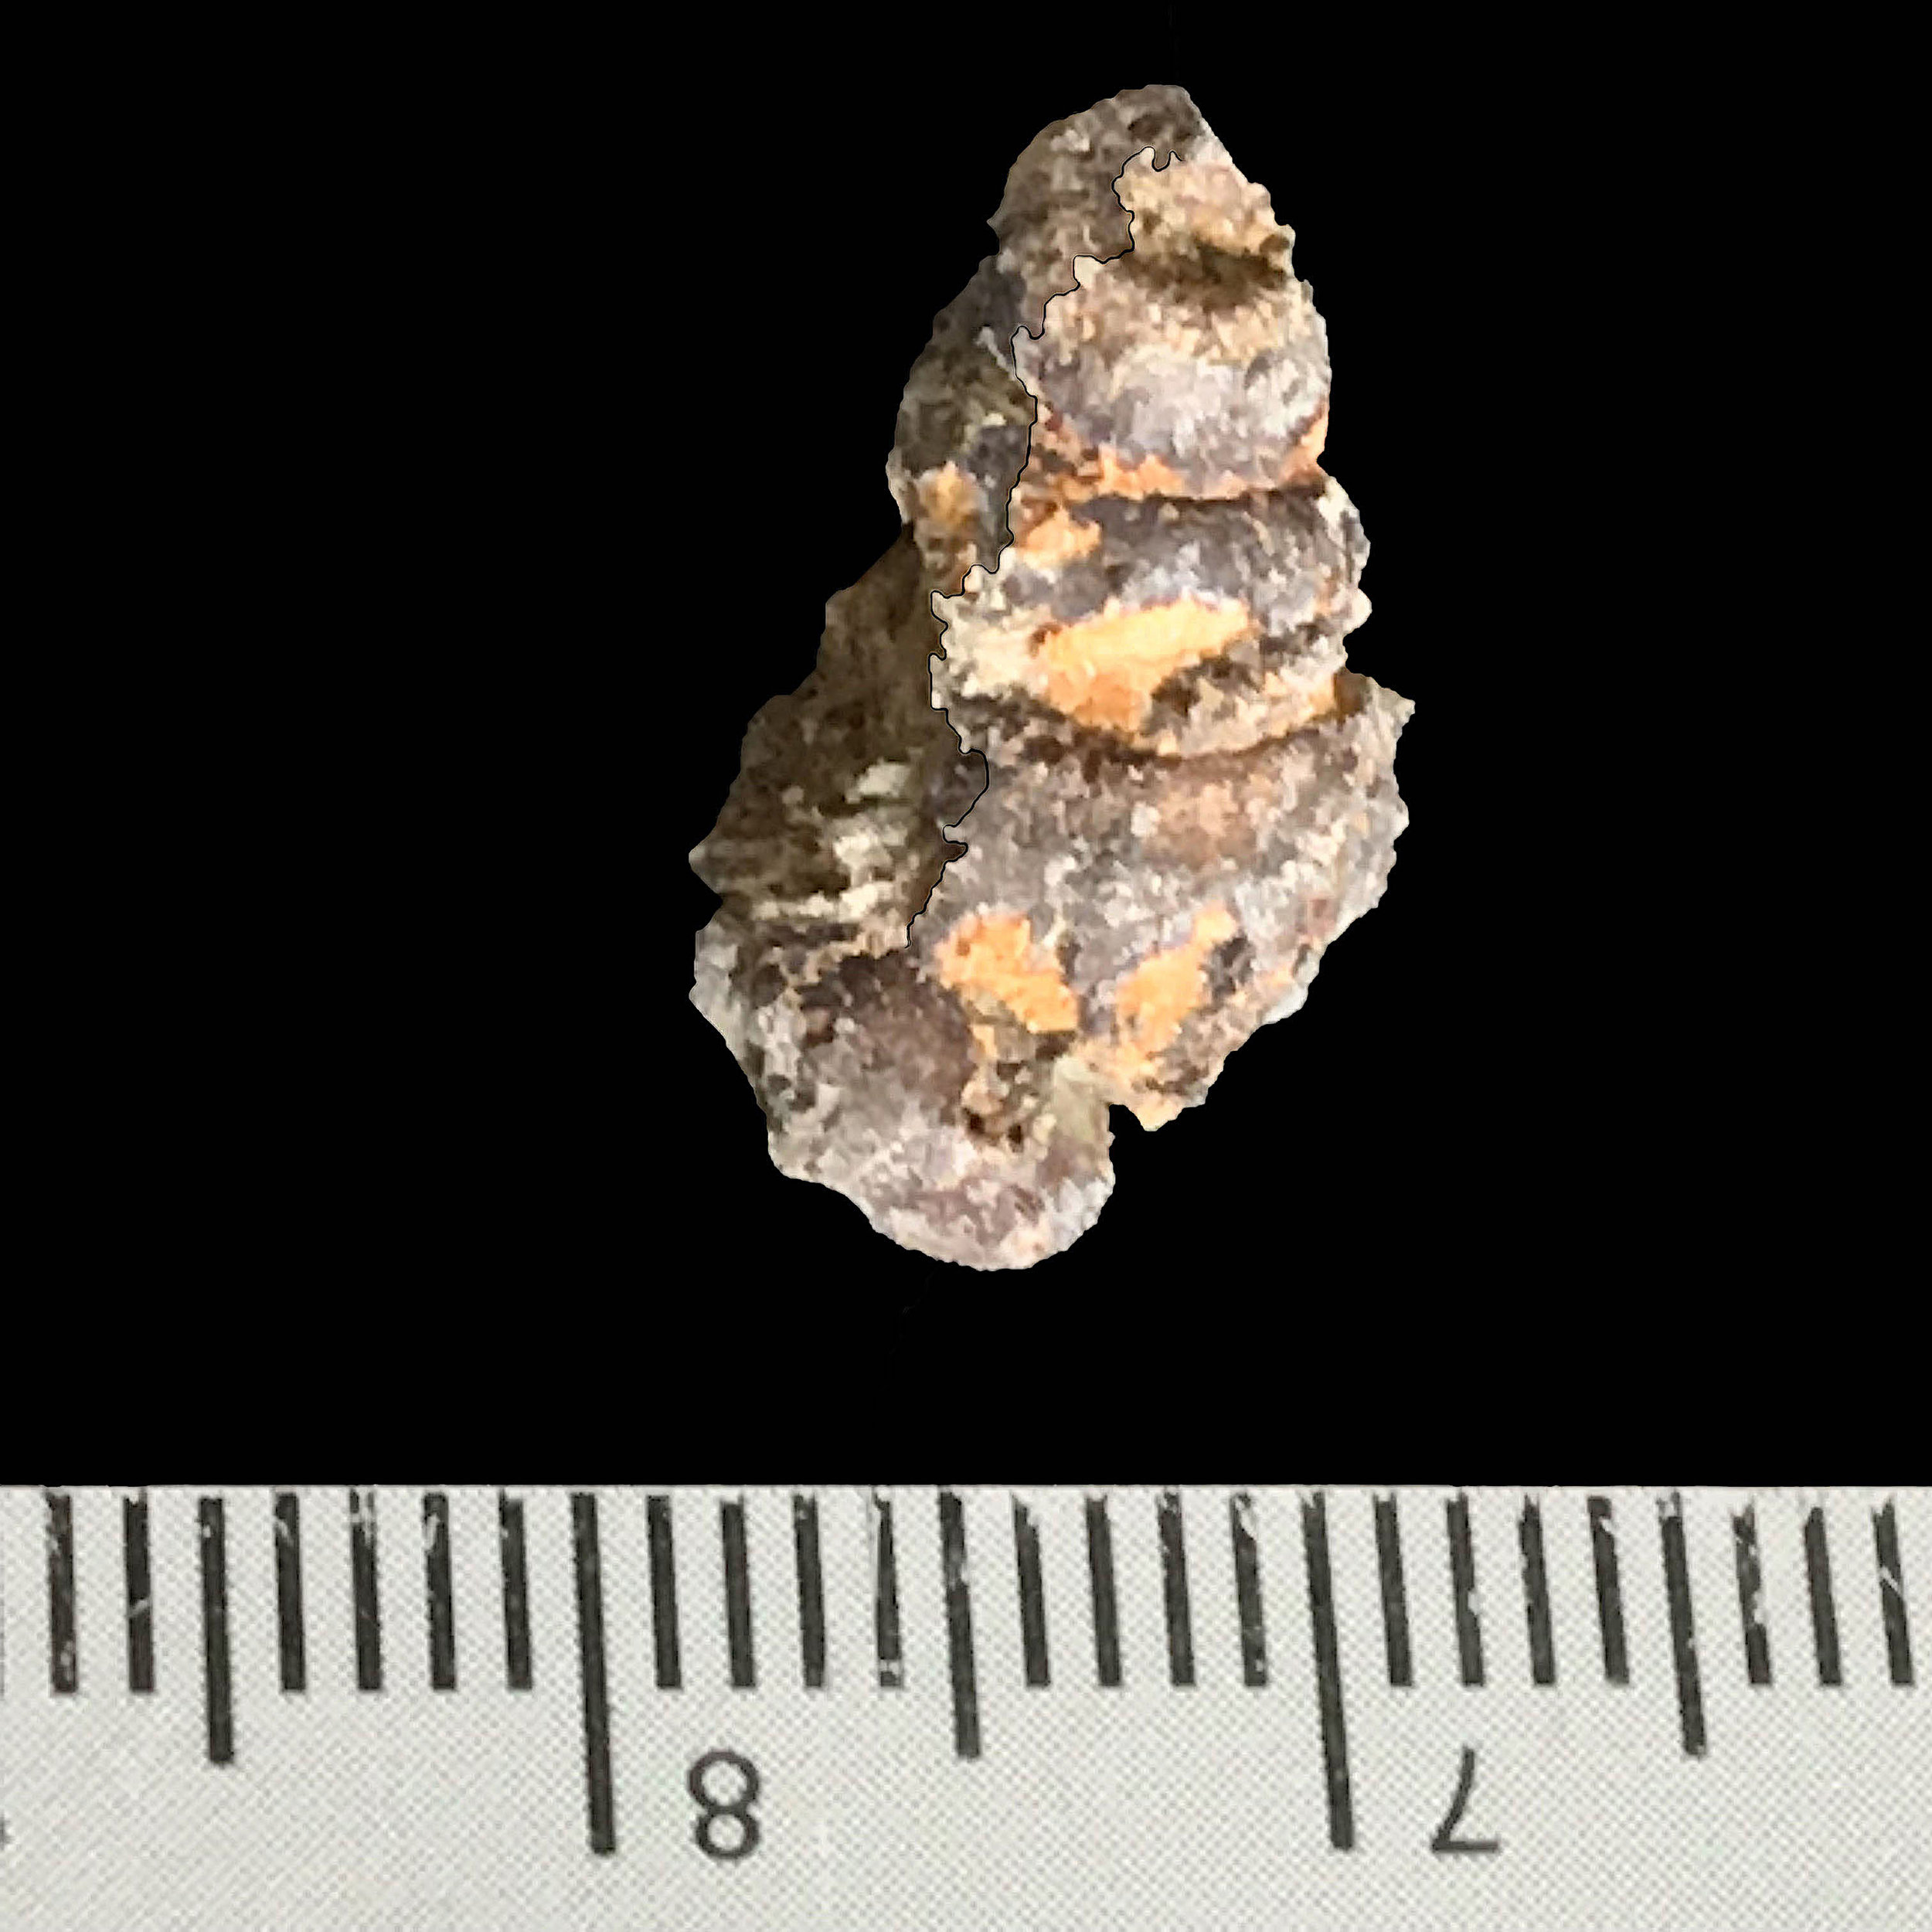 Pyritized Mariella sp.  Del Rio Formation  Waco, TX